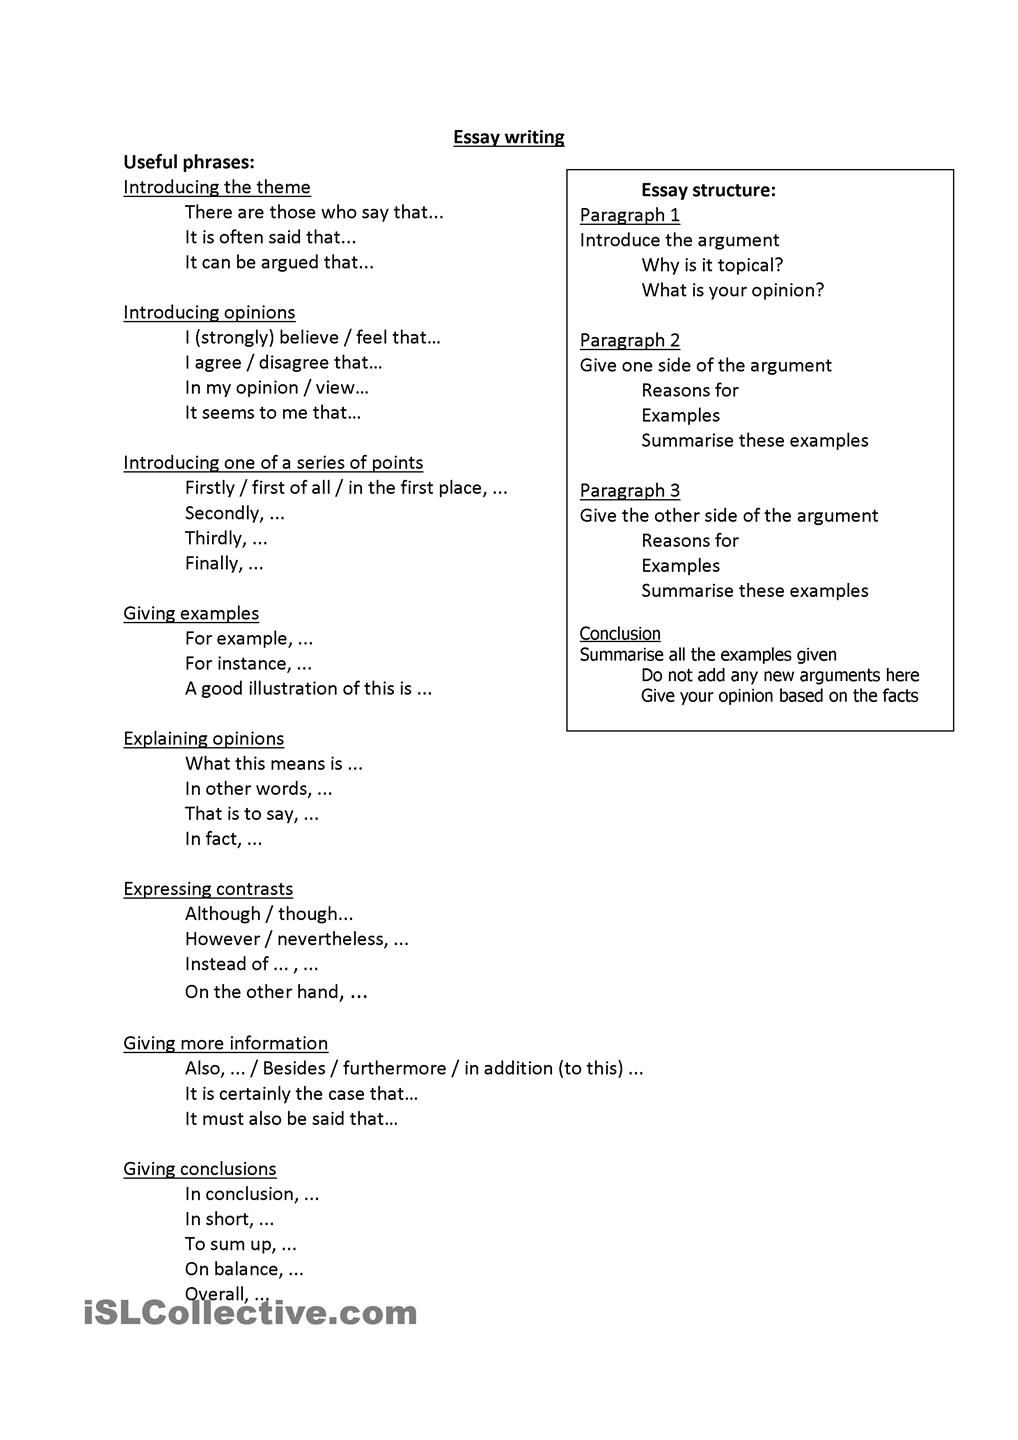 small resolution of Useful phrases for Essay Writing   Essay writing